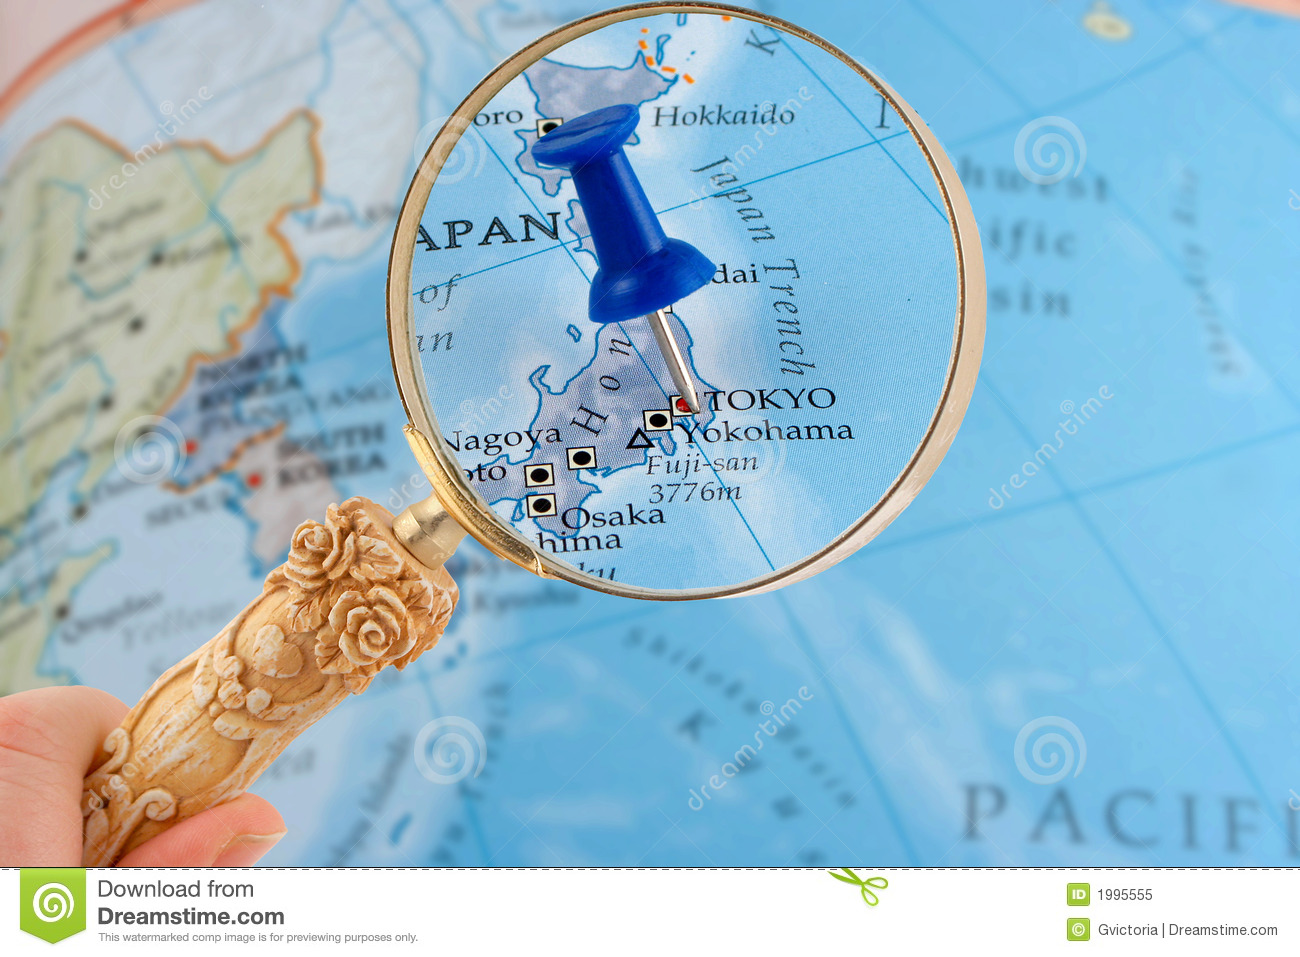 Tokyo map tack stock image. Image of glass, find, loops - 1995555